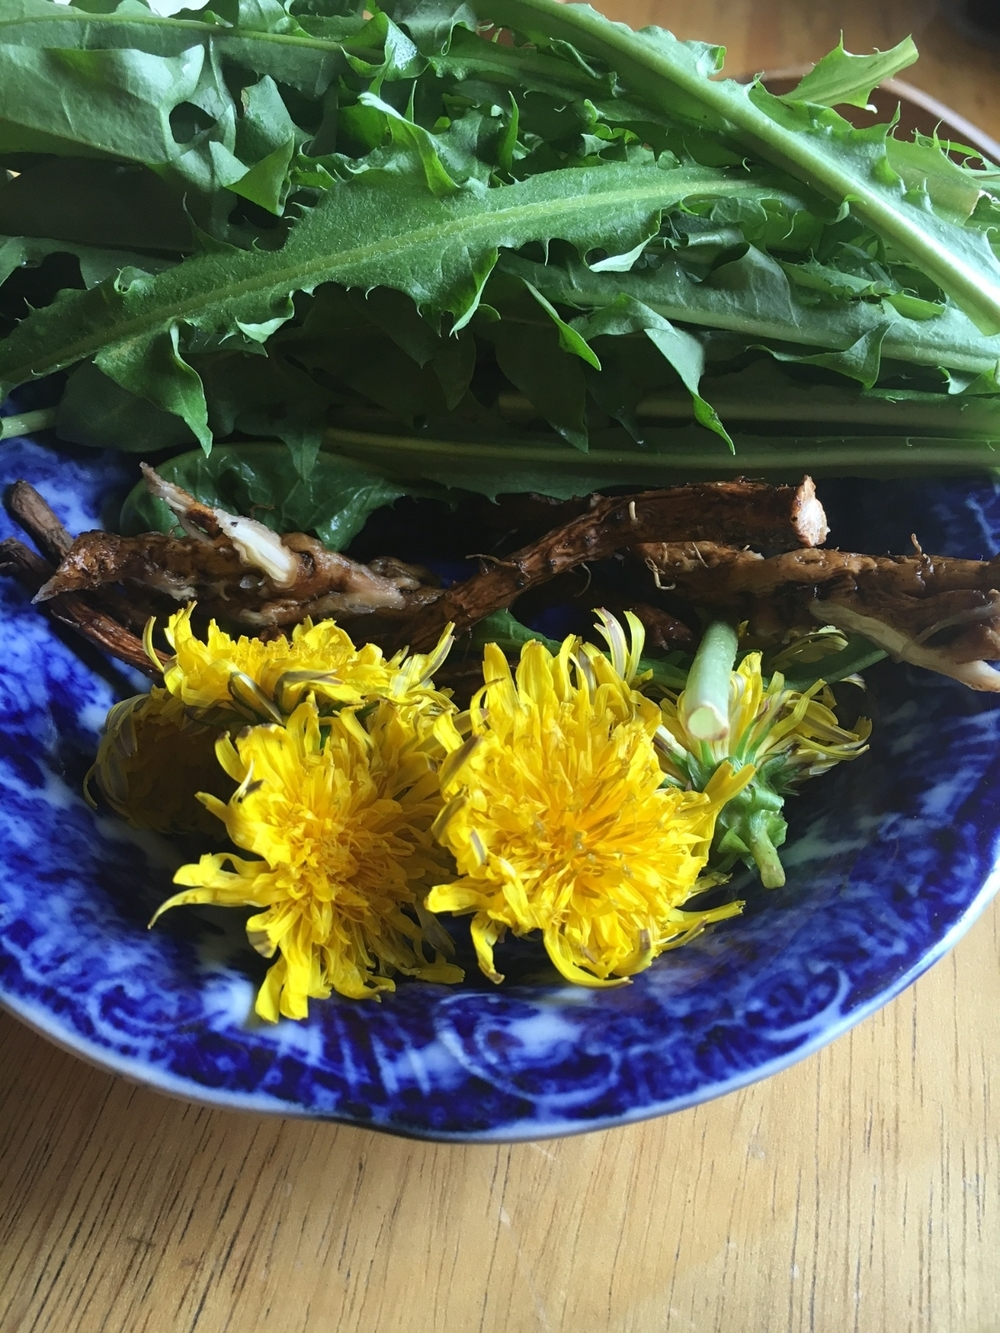 Dandelion leaves, root and flowers for a tincture.